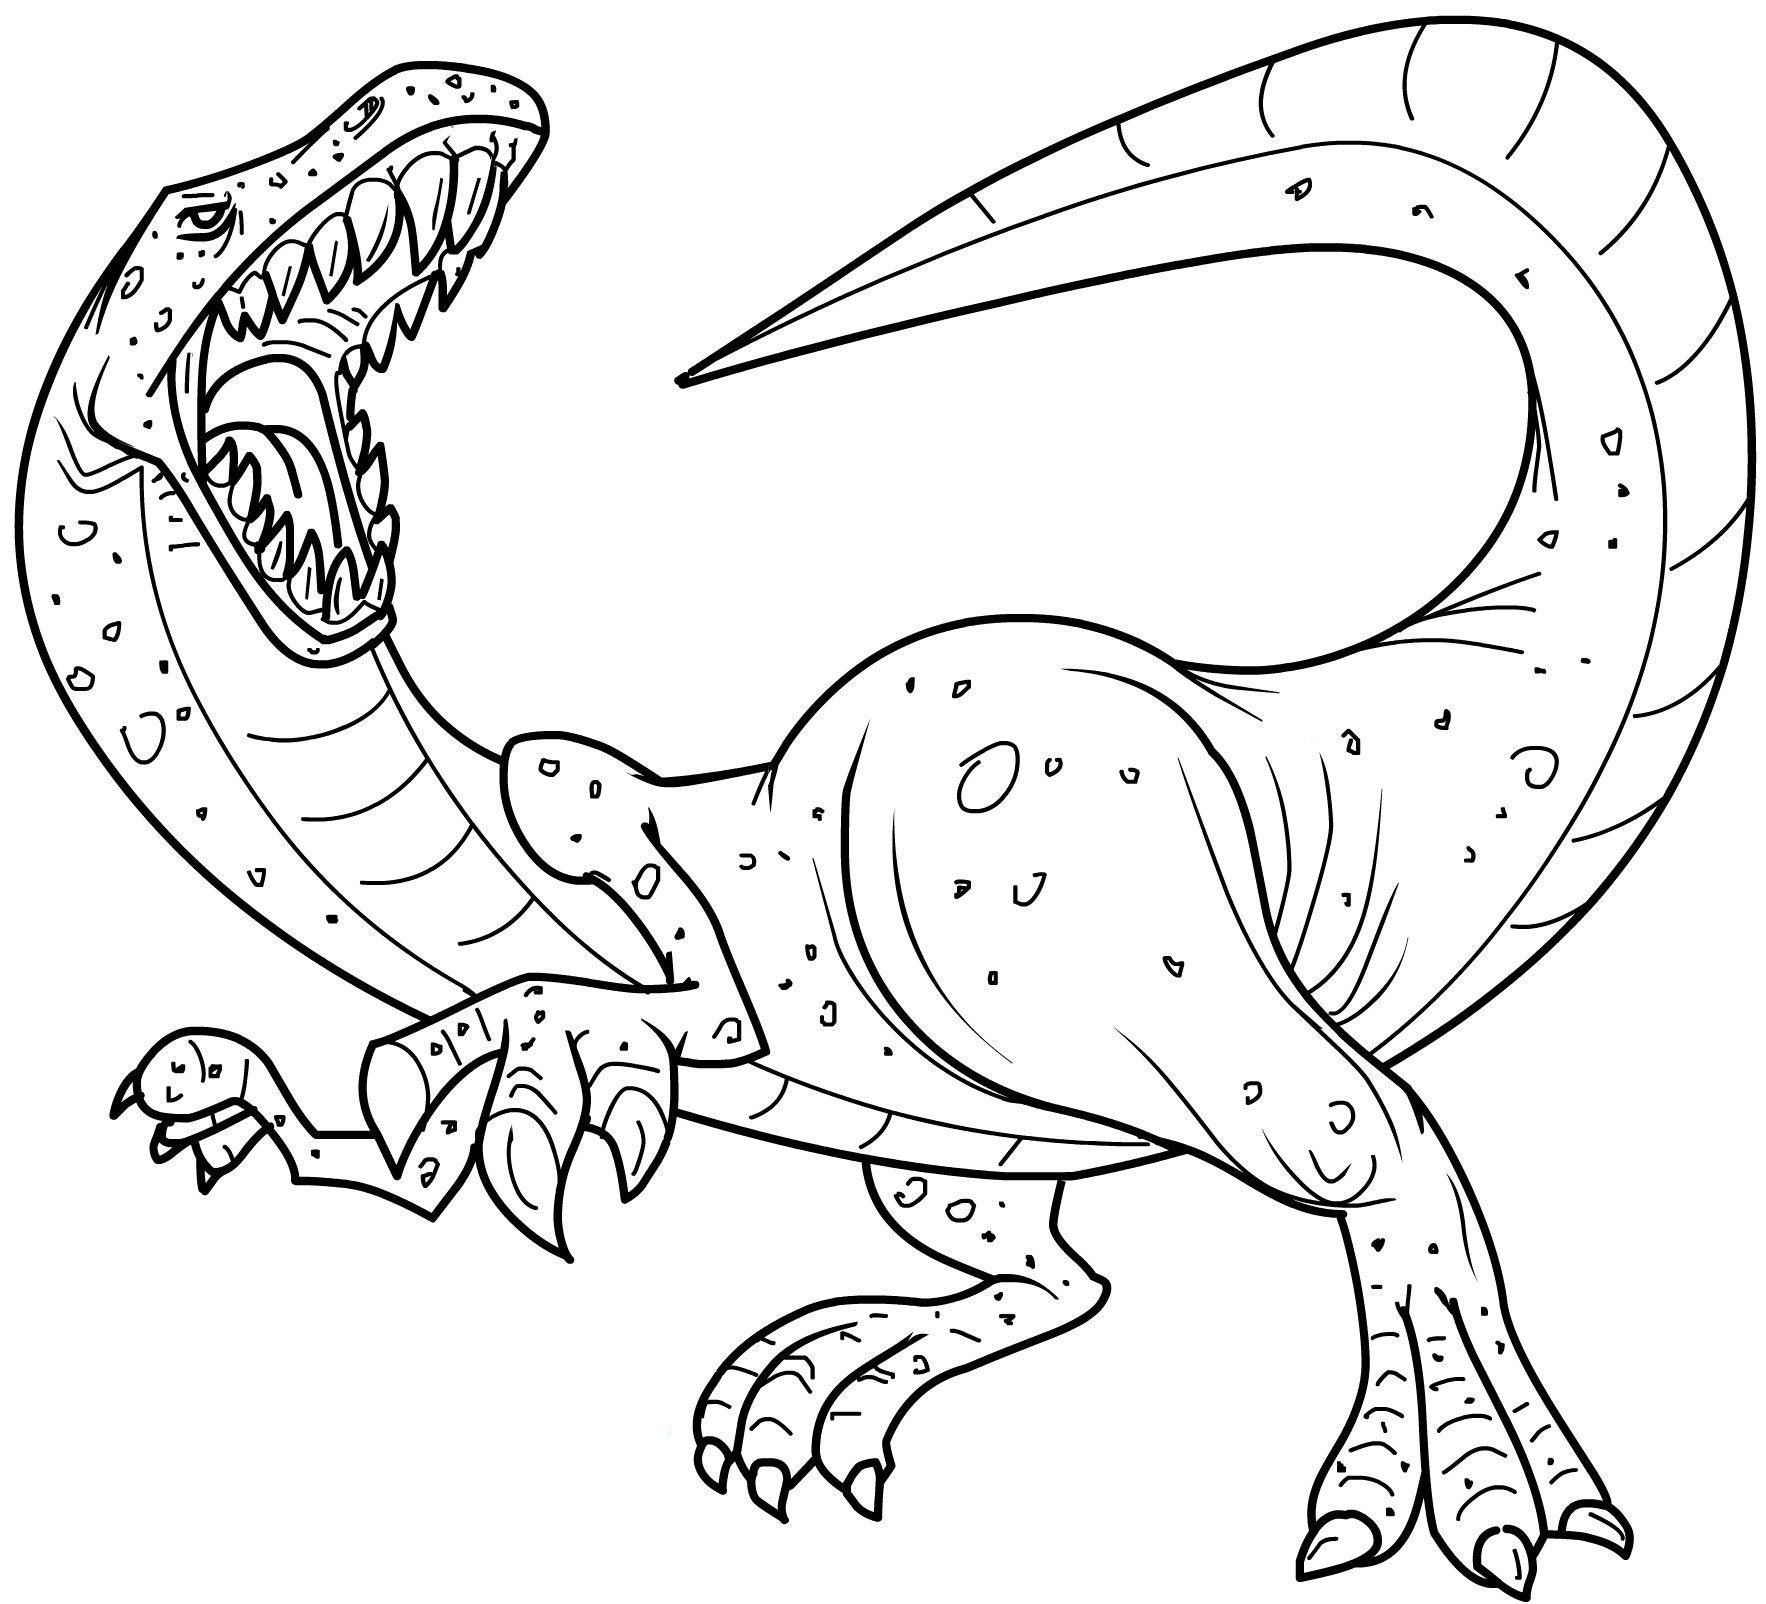 dinosaurs color pages baby dinosaur coloring pages for preschoolers activity dinosaurs color pages